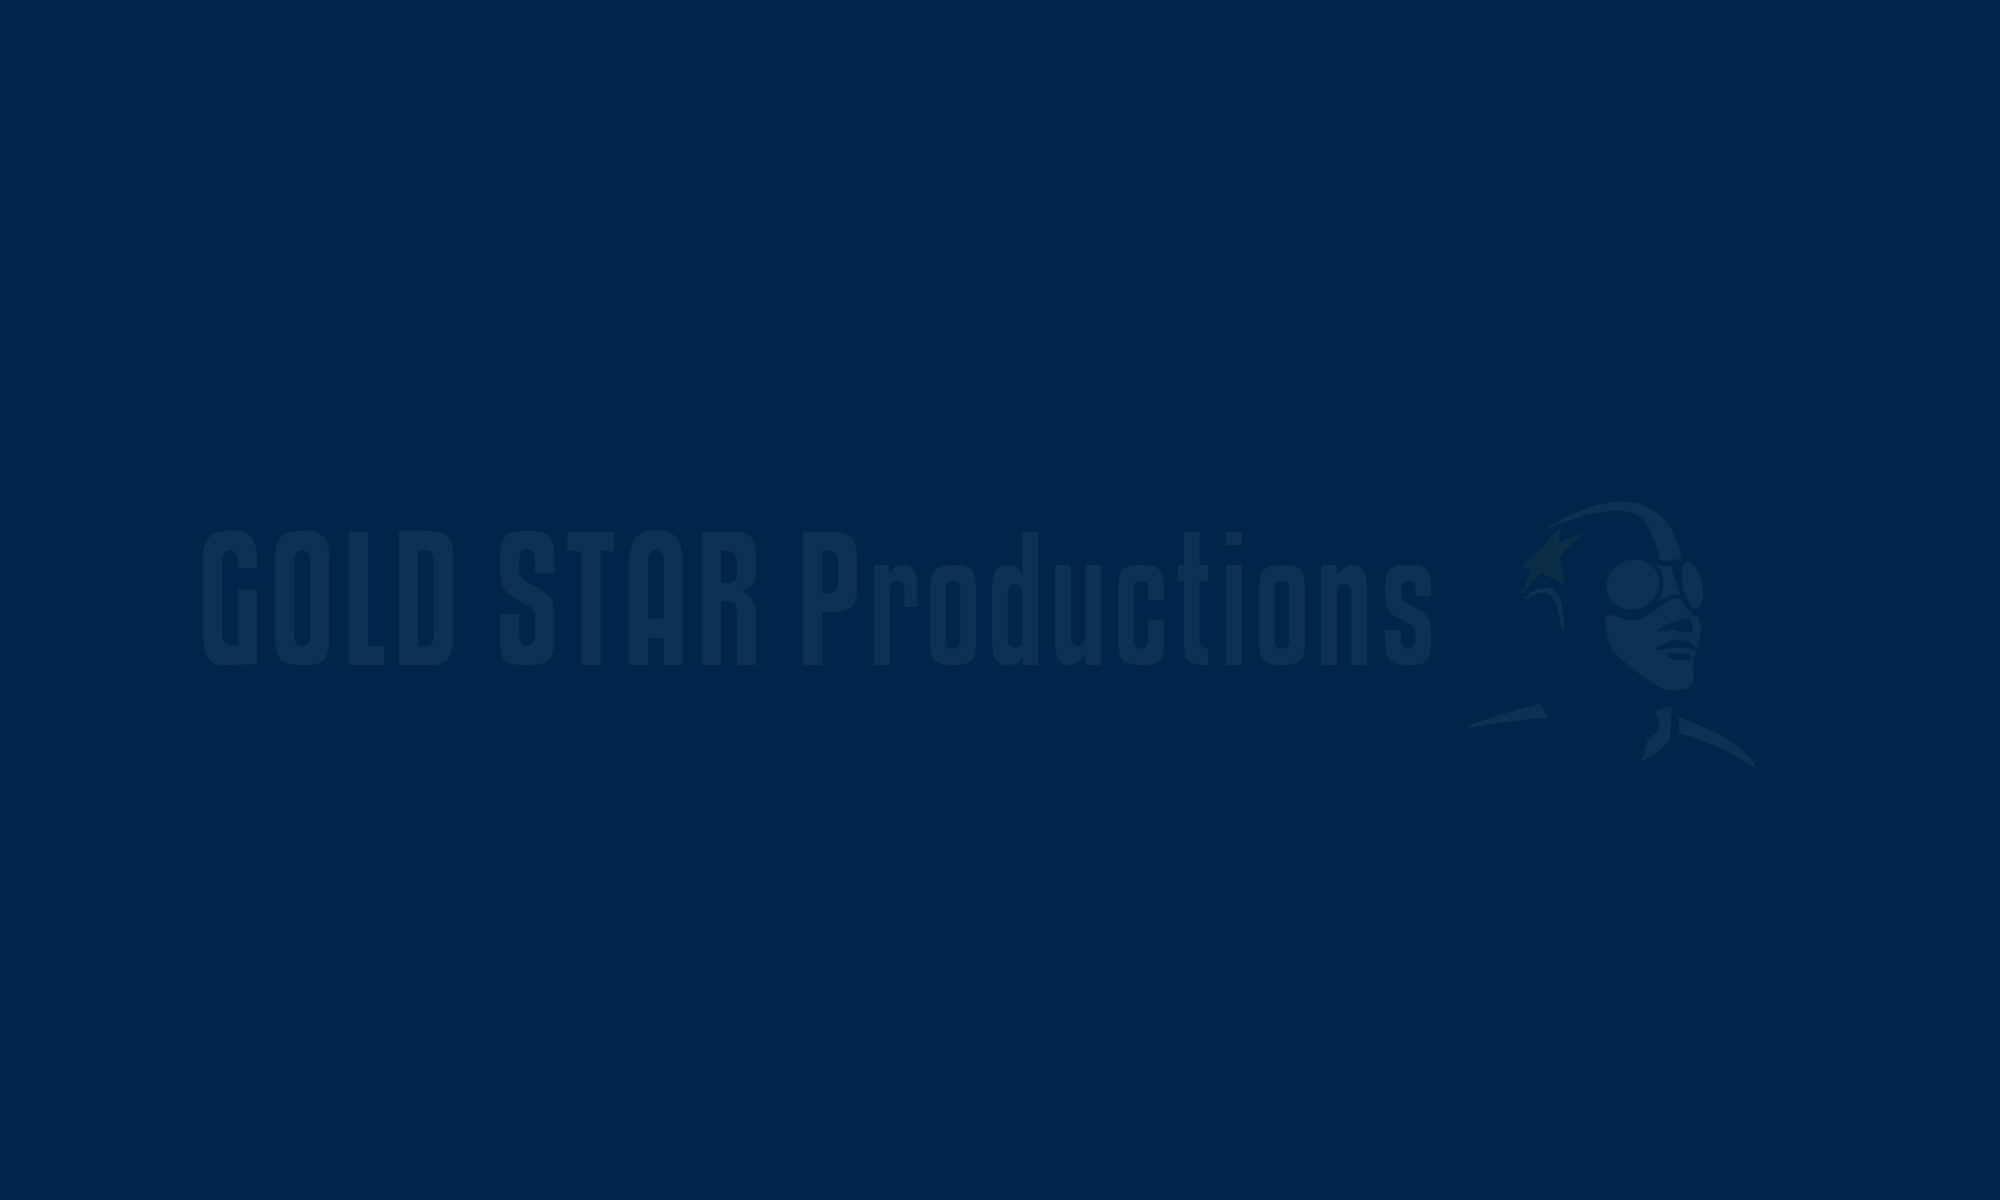 Gold Star Productions